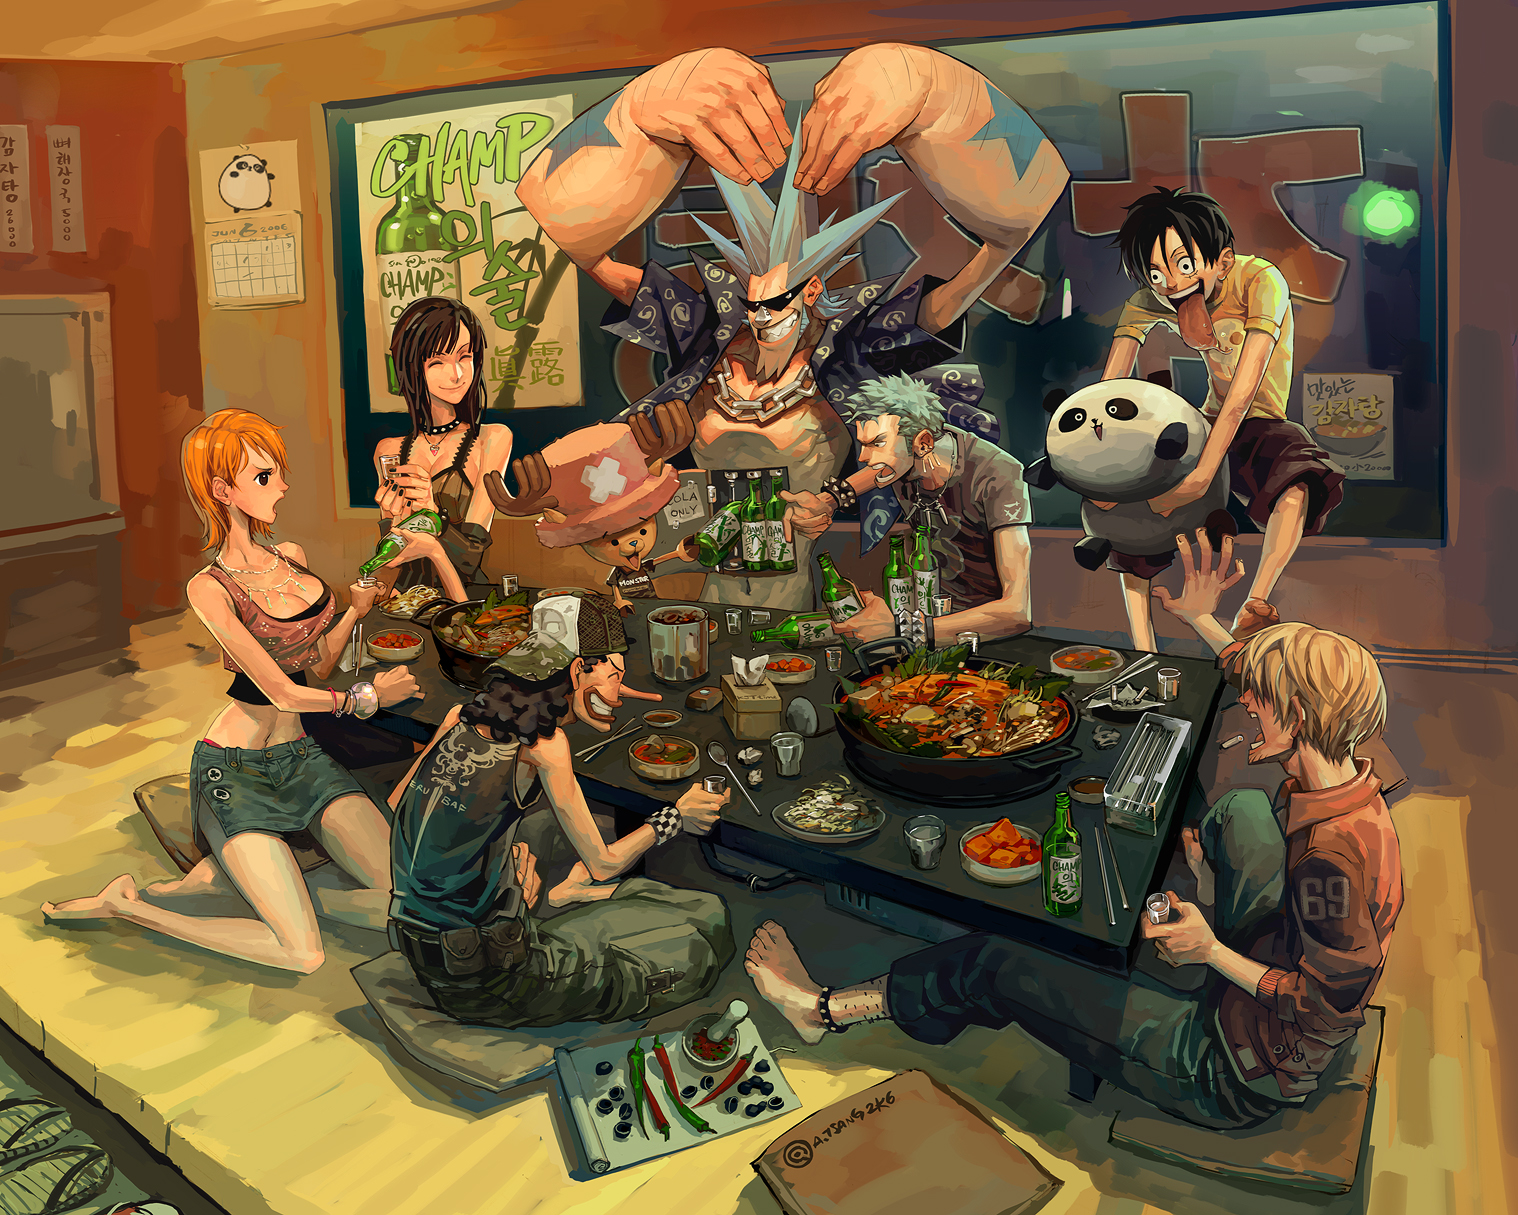 Foto One Piece http://blokufo.blogspot.jp/2012/07/foto-dan-wallpaper-anime-one-piece.html